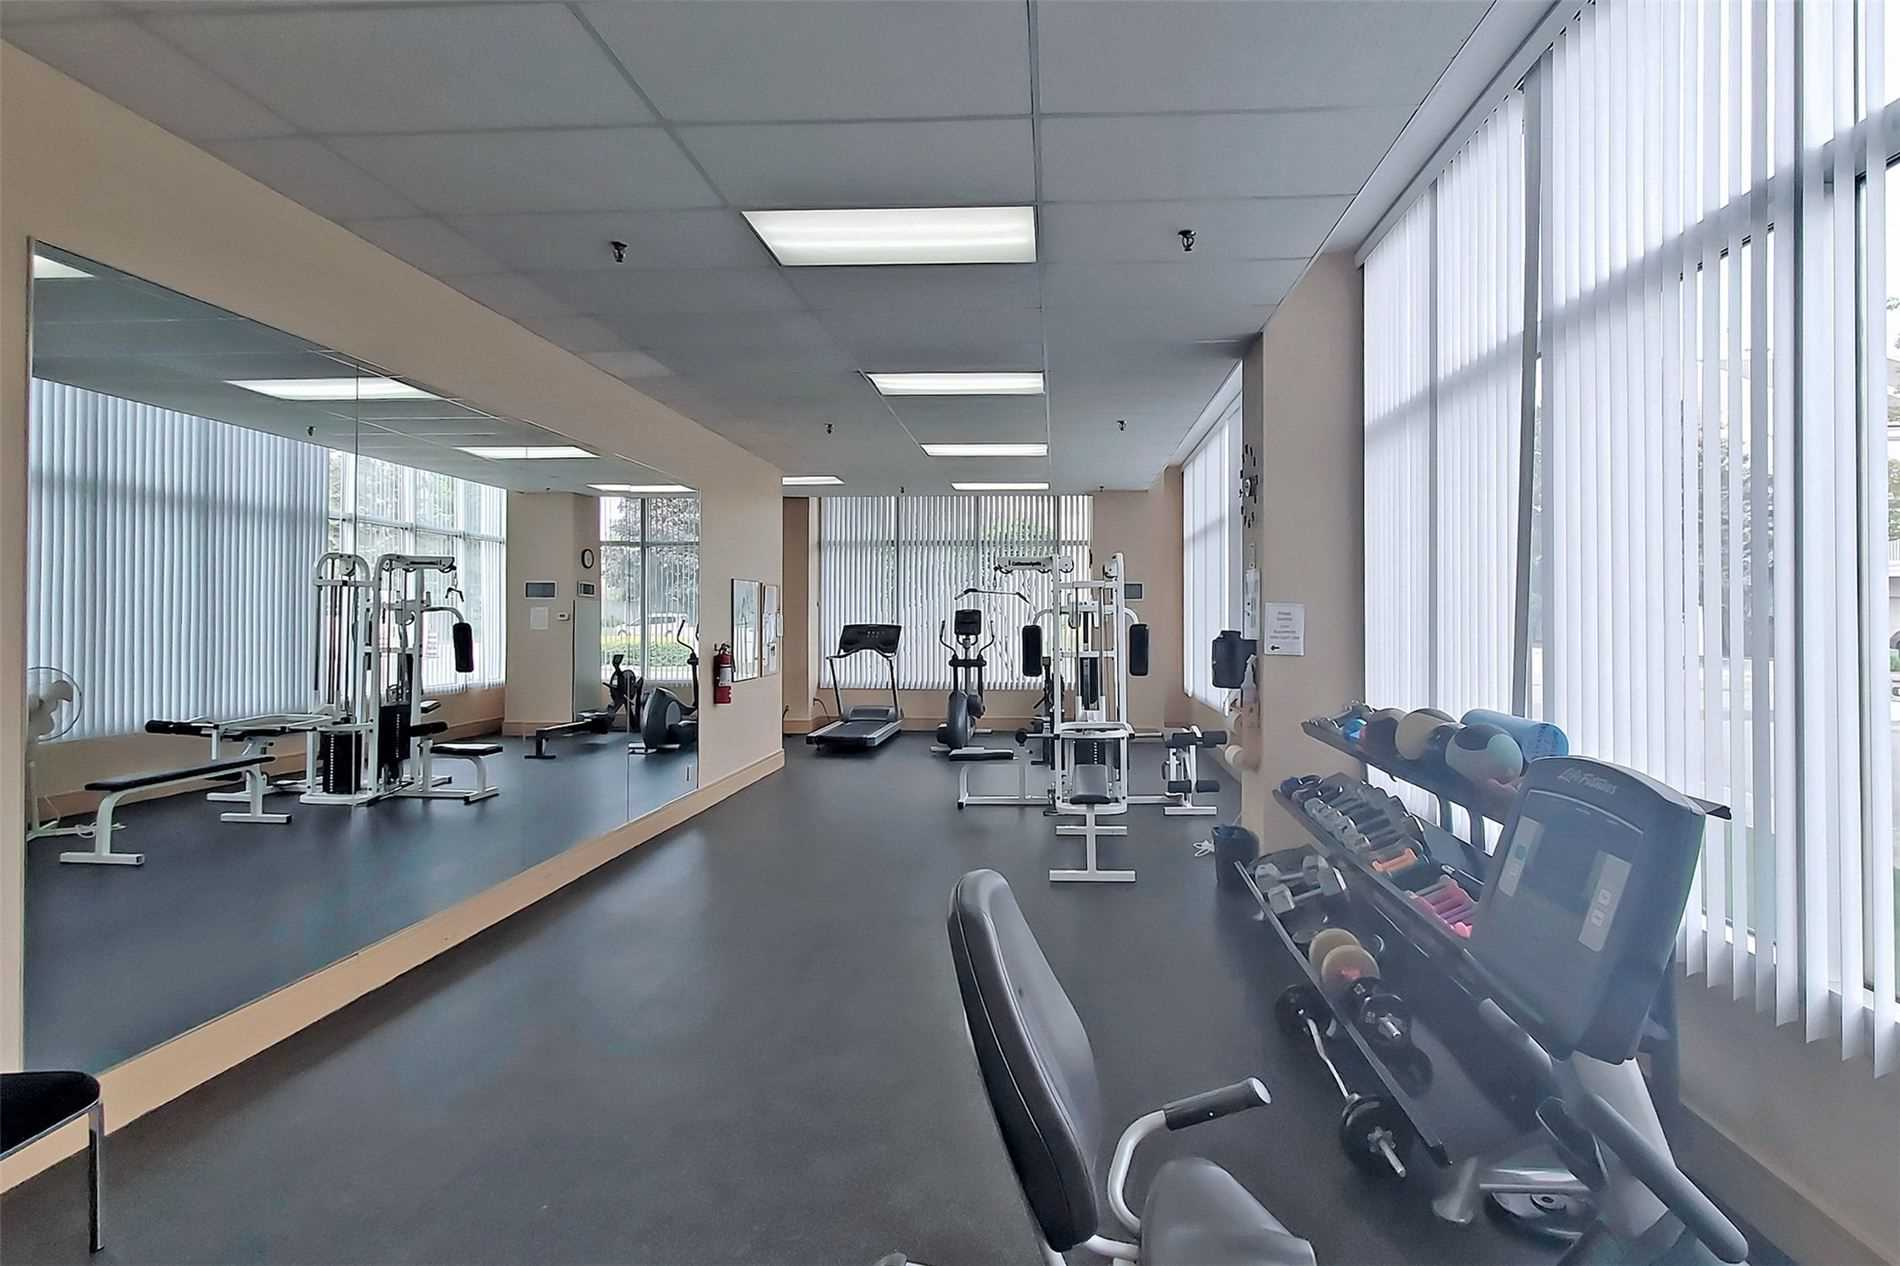 Image 24 of 40 showing inside of 2 Bedroom Condo Apt 2-Storey for Sale at 25 Cumberland Lane Unit# 105, Ajax L1S7K1